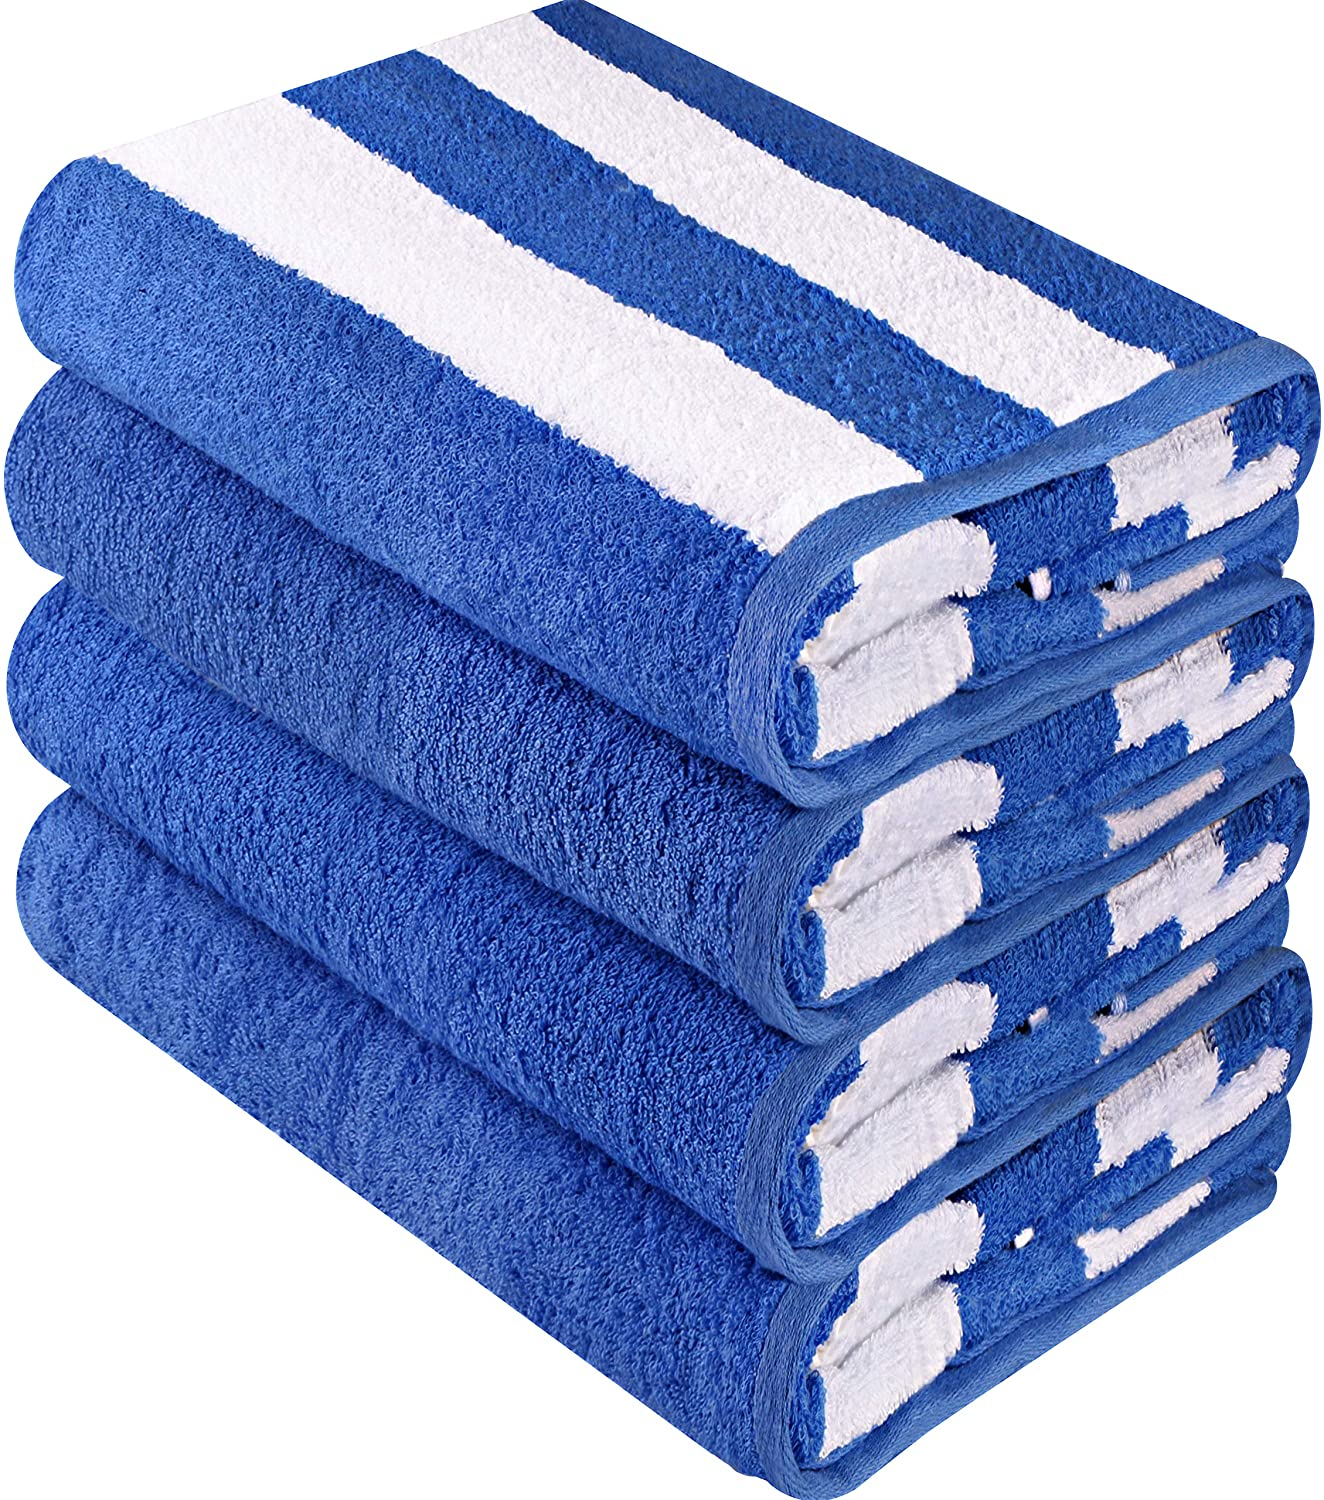 Utopia Towels Cabana Stripe Beach Towels Best Beach Towels